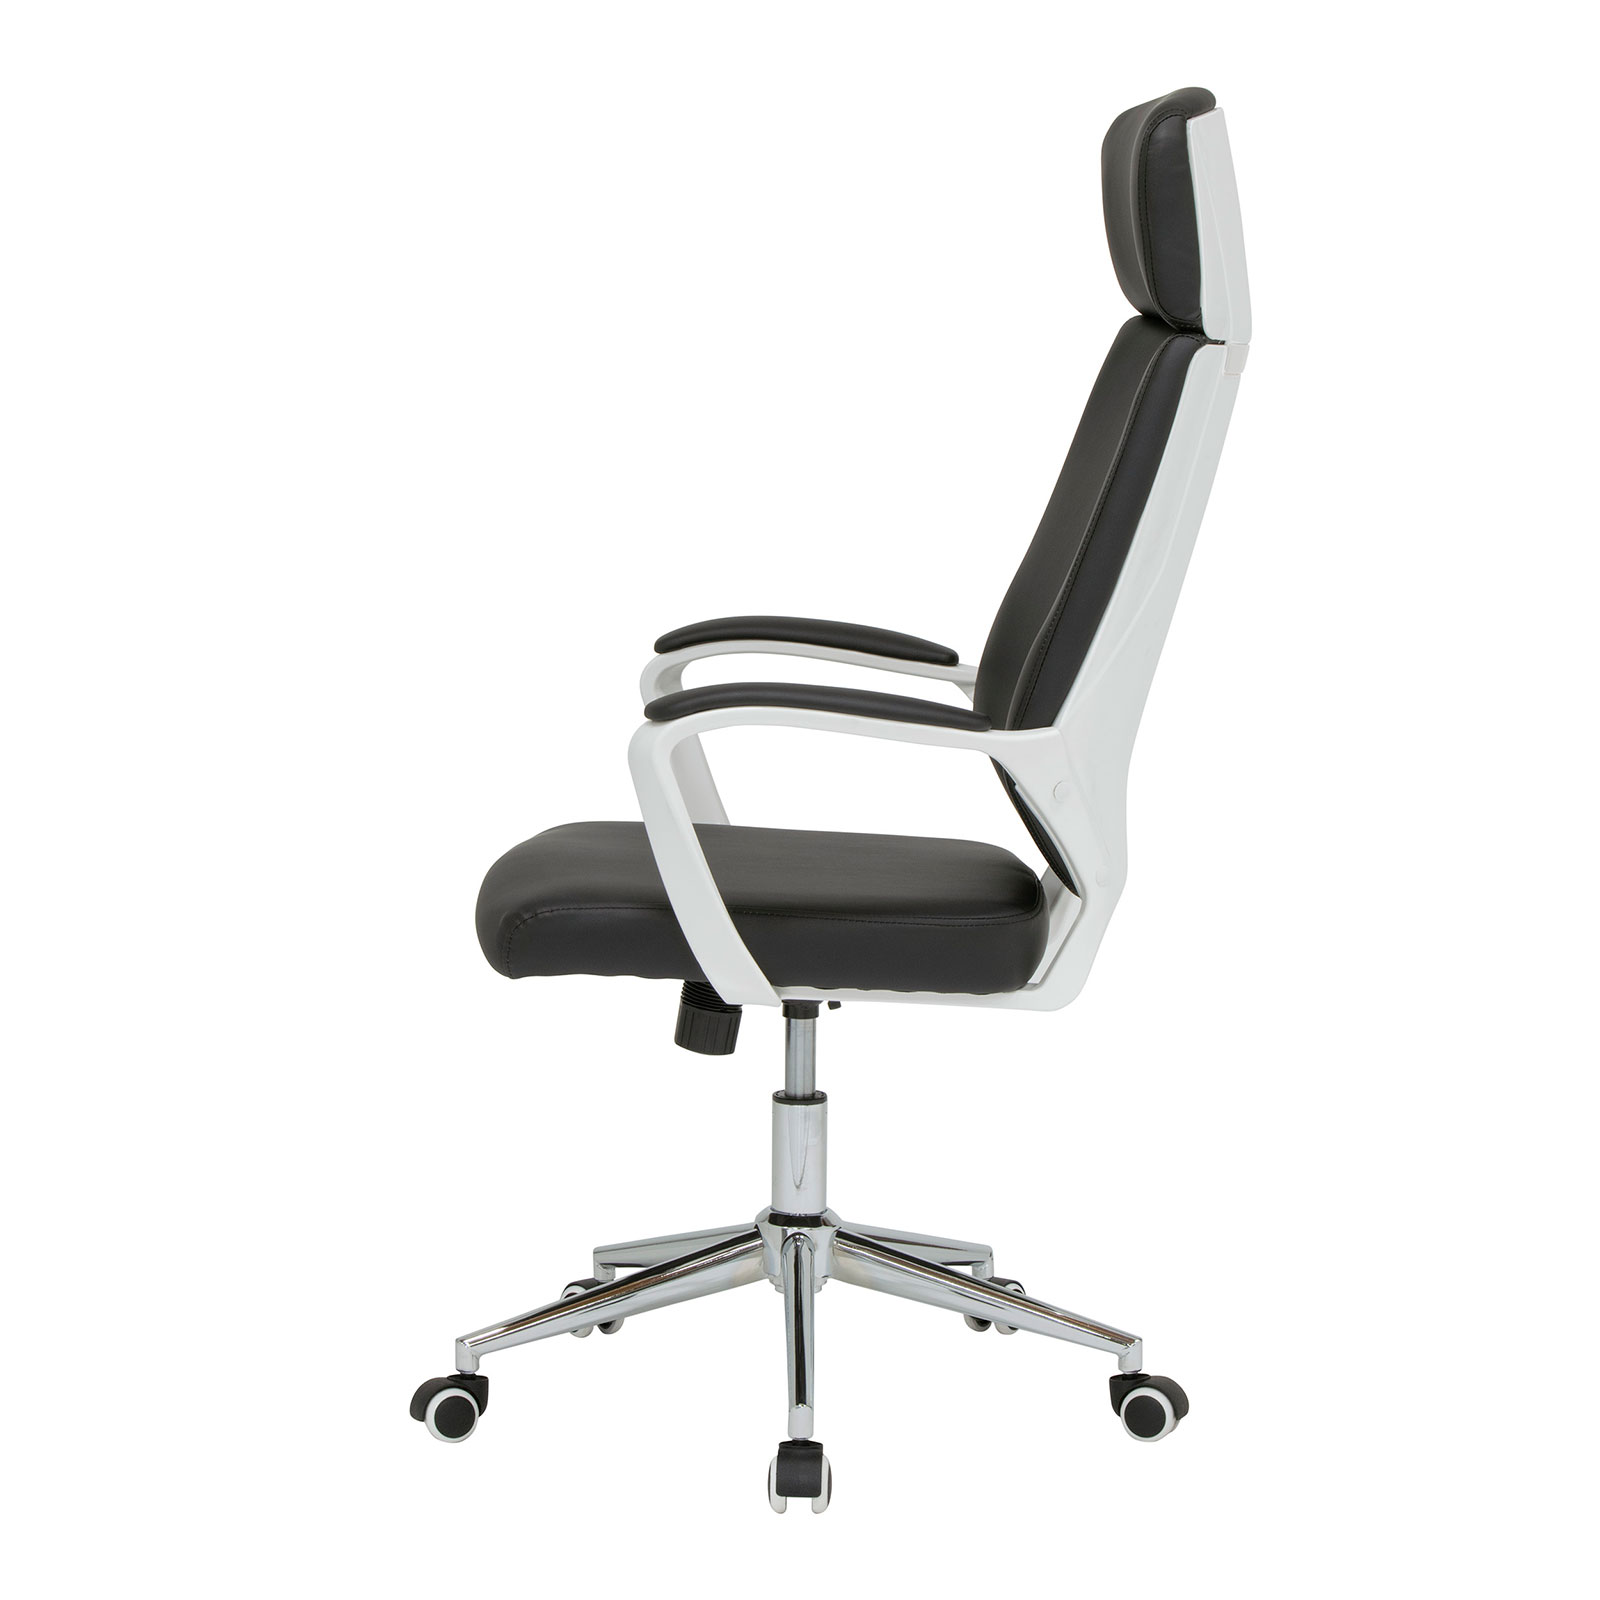 10662-High-Back-Deluxe-Managers-Chair-L-side